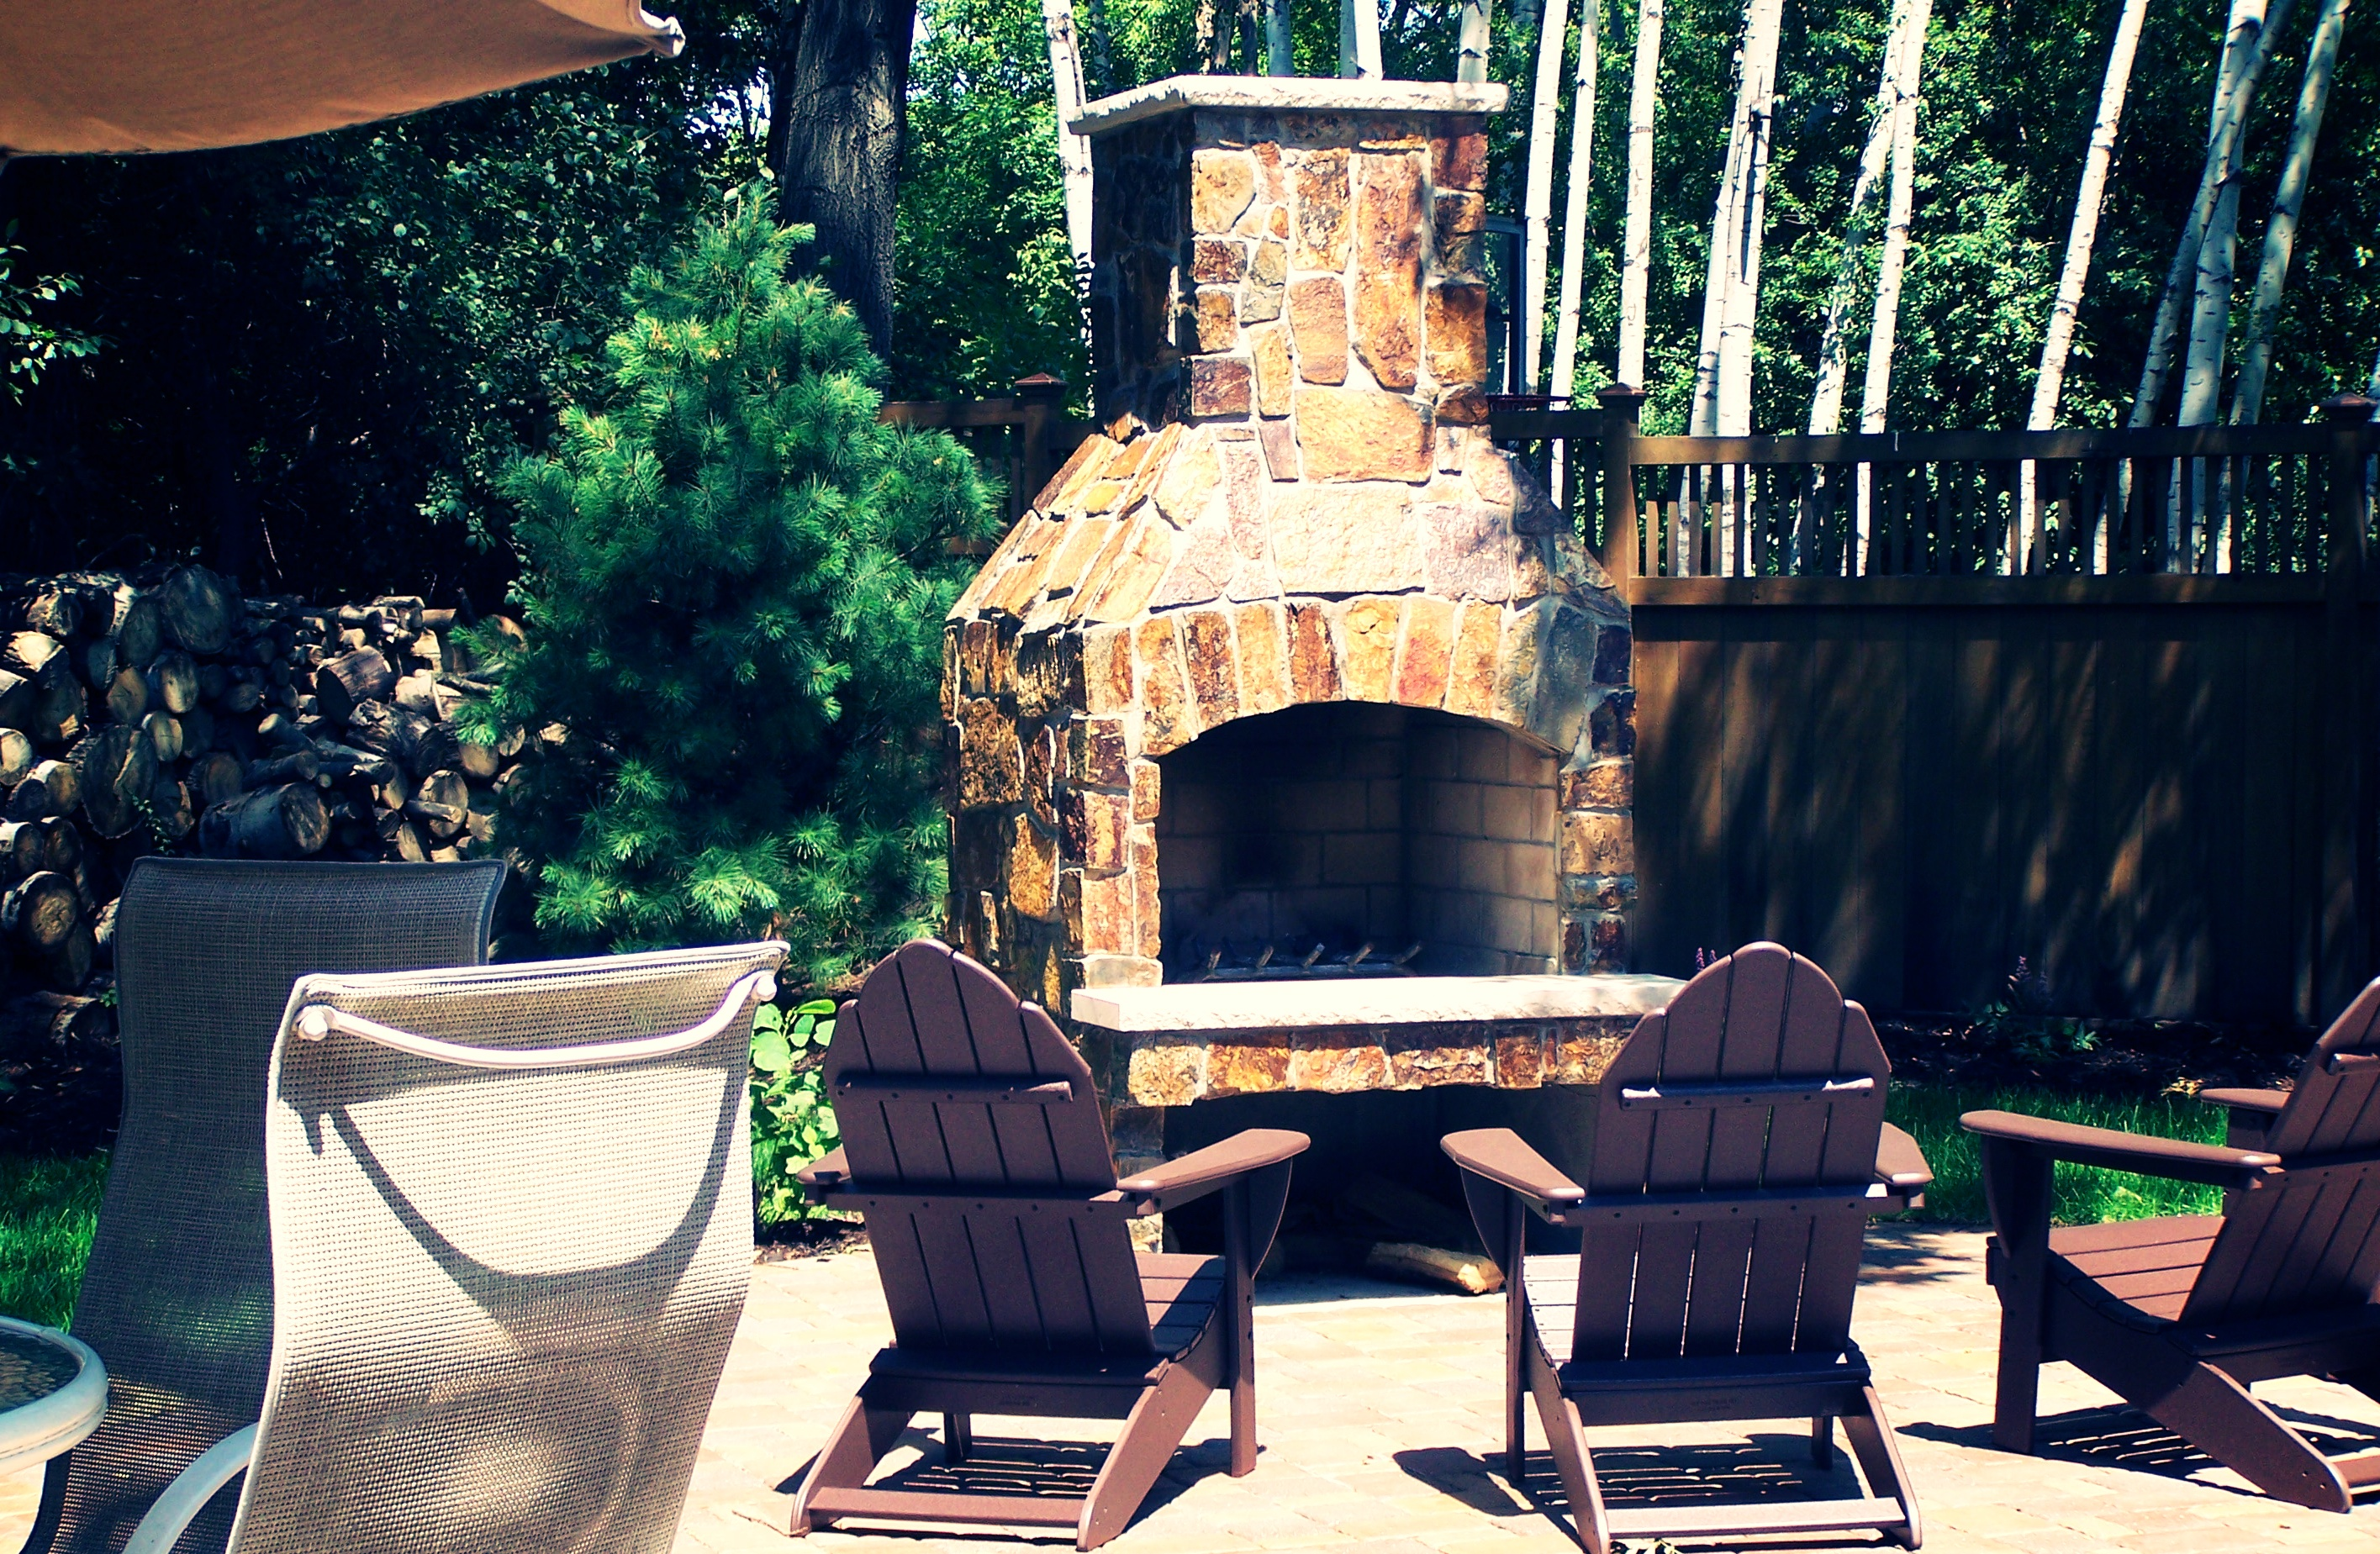 Outdoor Fire Pits Great Goats Landscapinggreat Goats